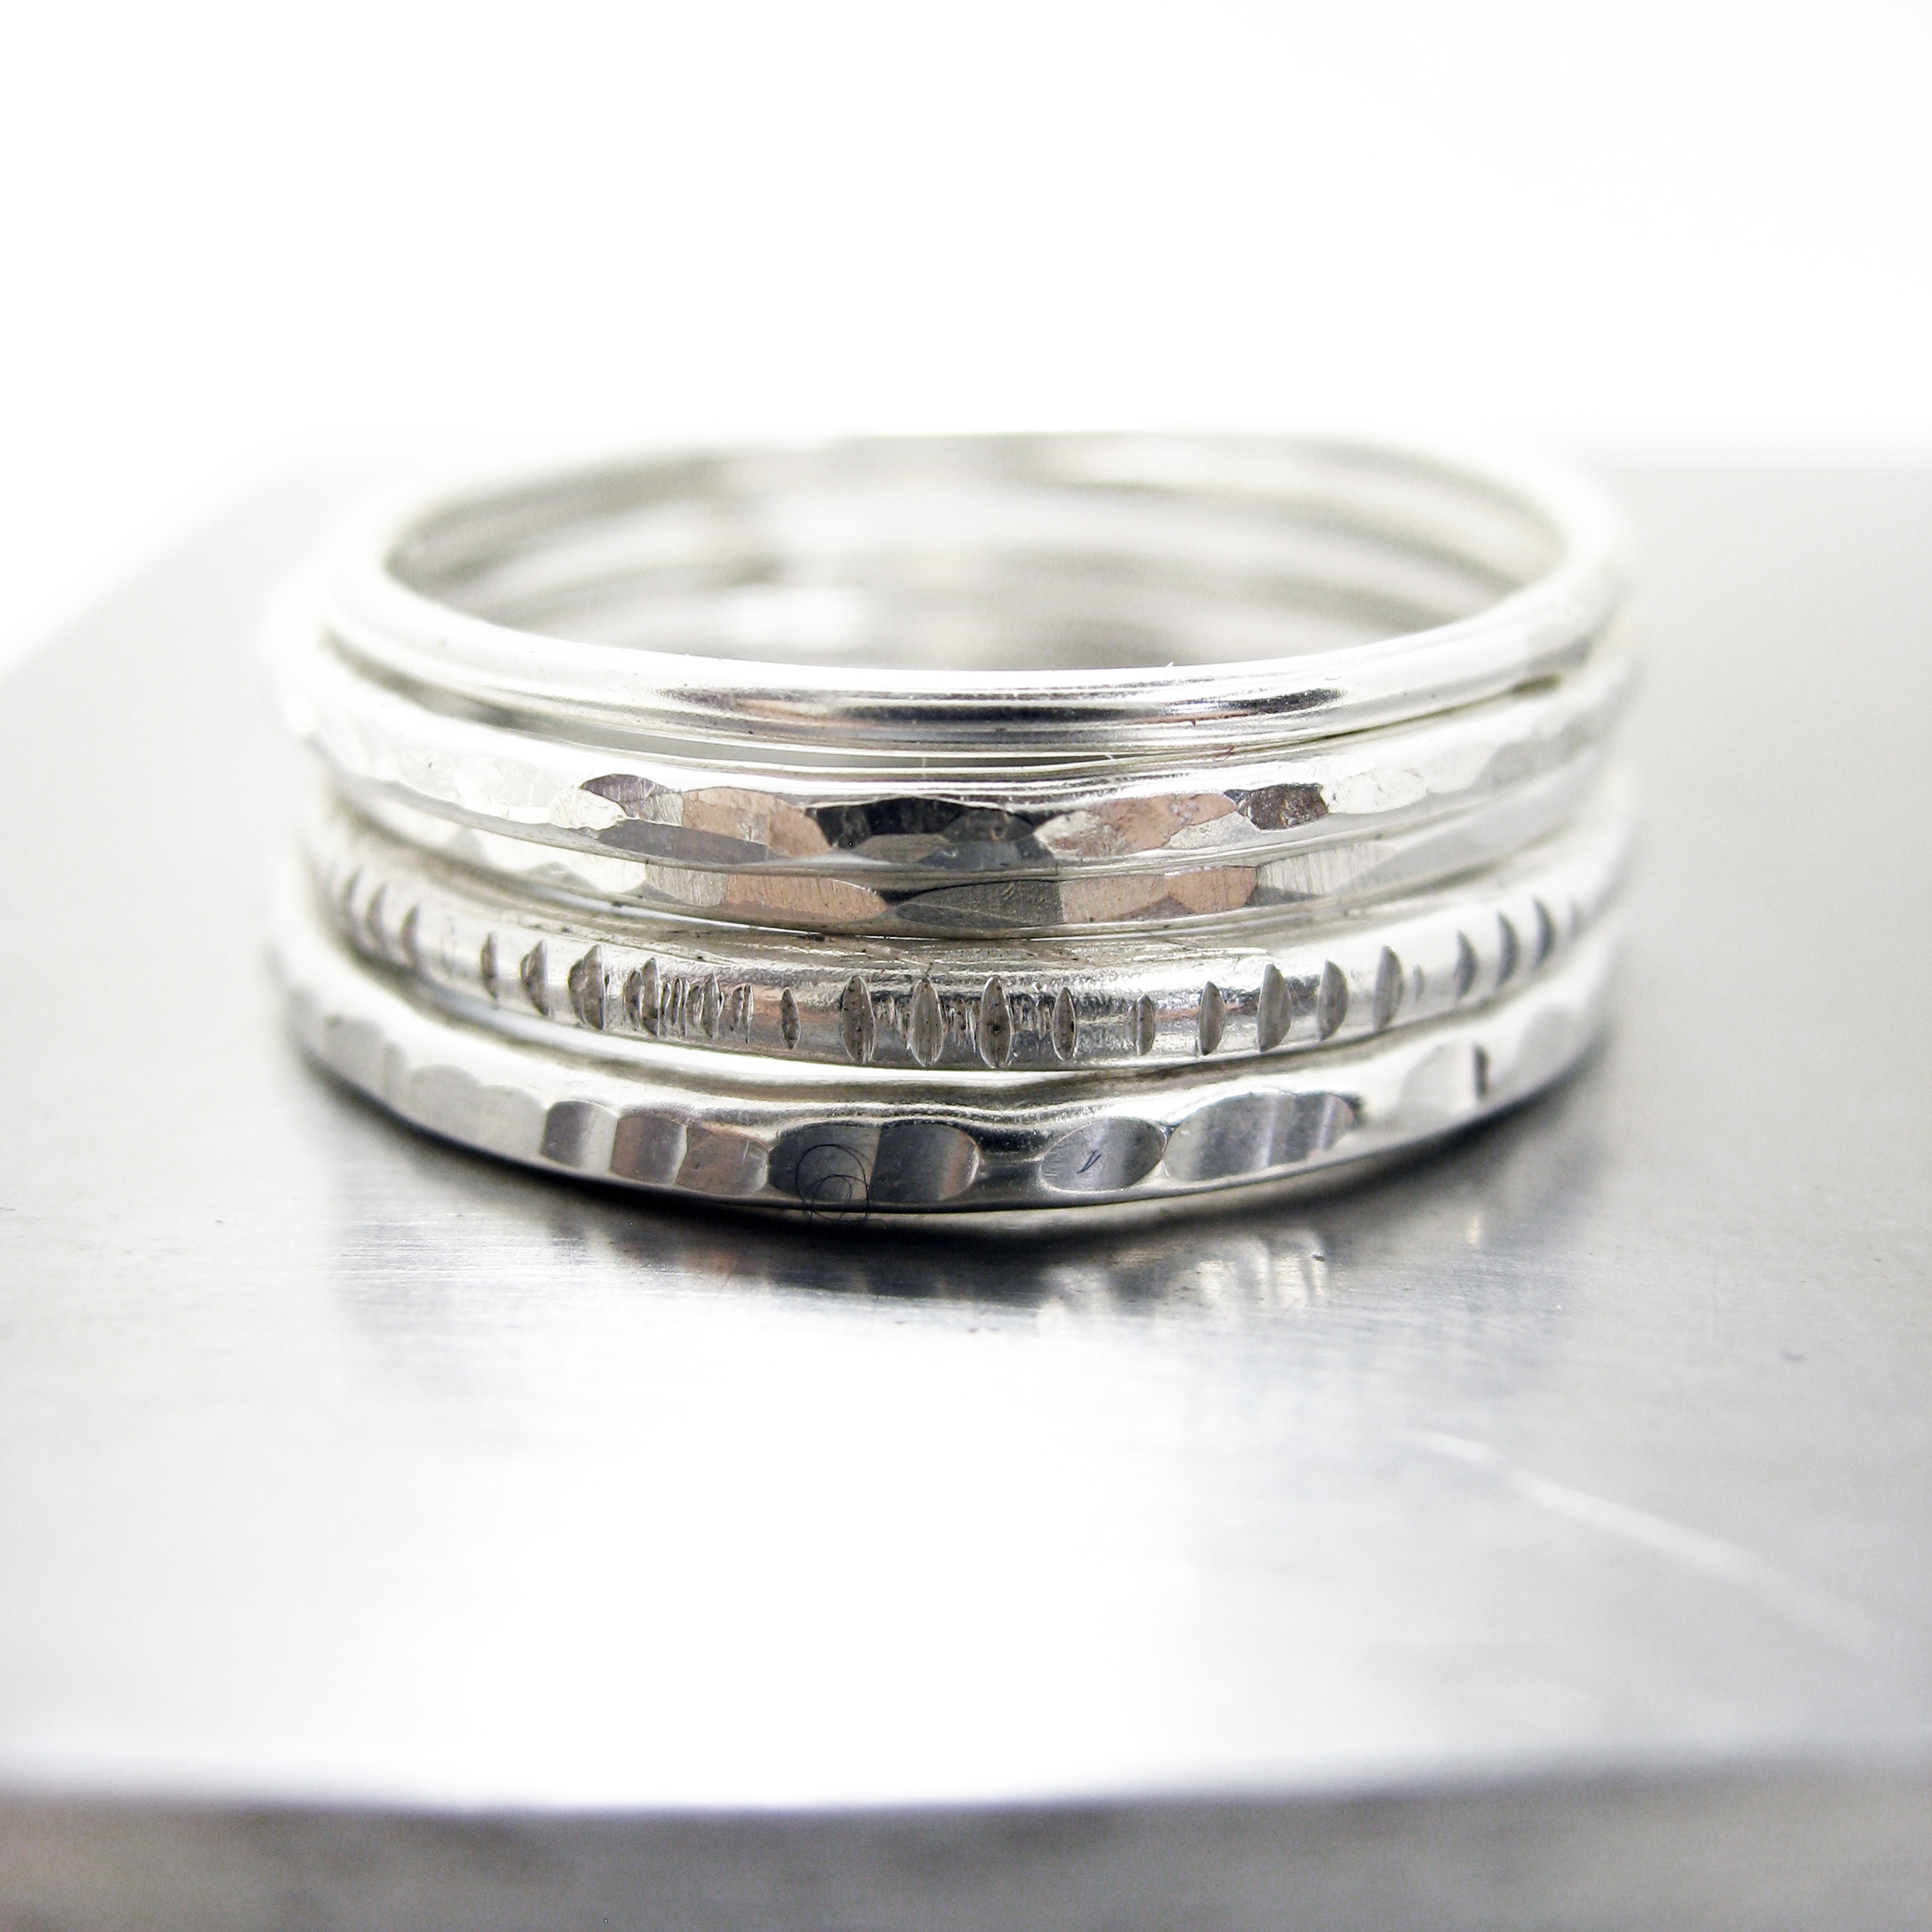 All Sterling Silver Stacking RIngs  - Stacking Ring Workshop - Jewlery Lessons San Francisco - Sharon Z Jewelry.jpg